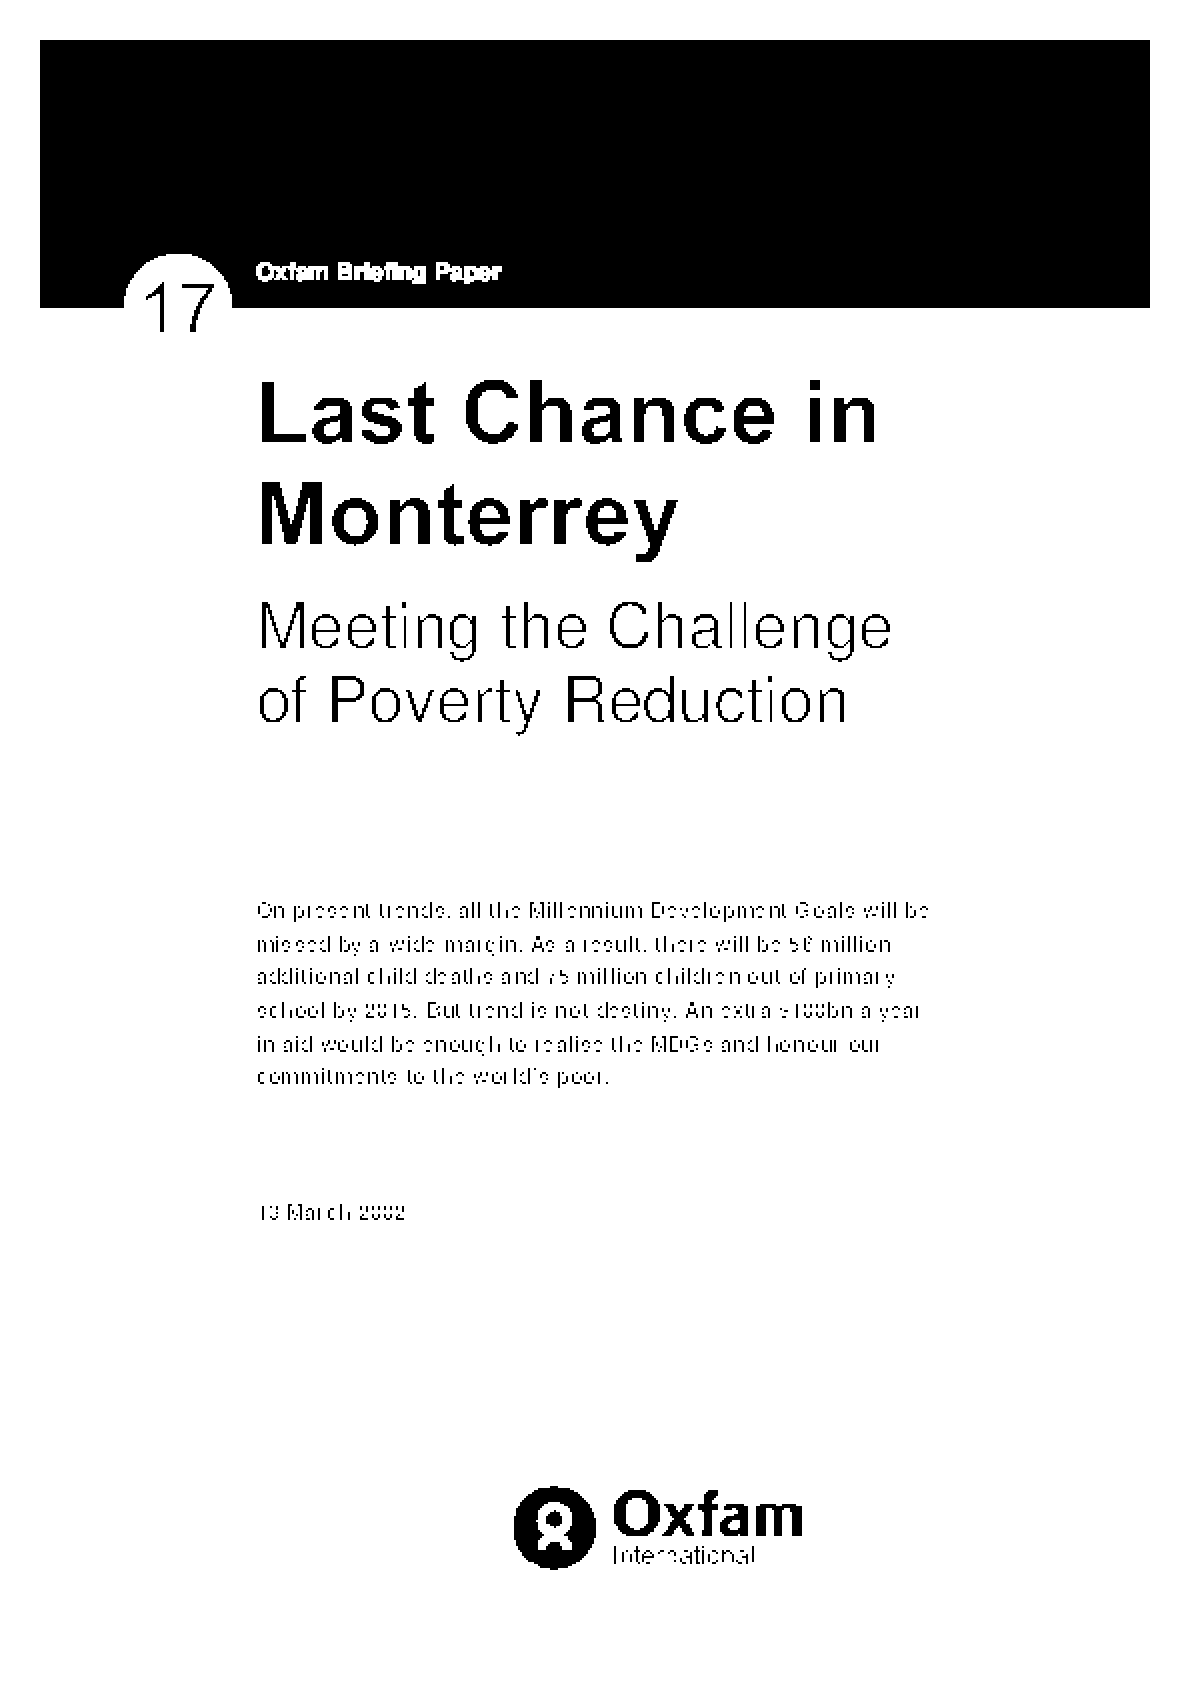 Last Chance in Monterrey: Meeting the challenge of Poverty Reduction